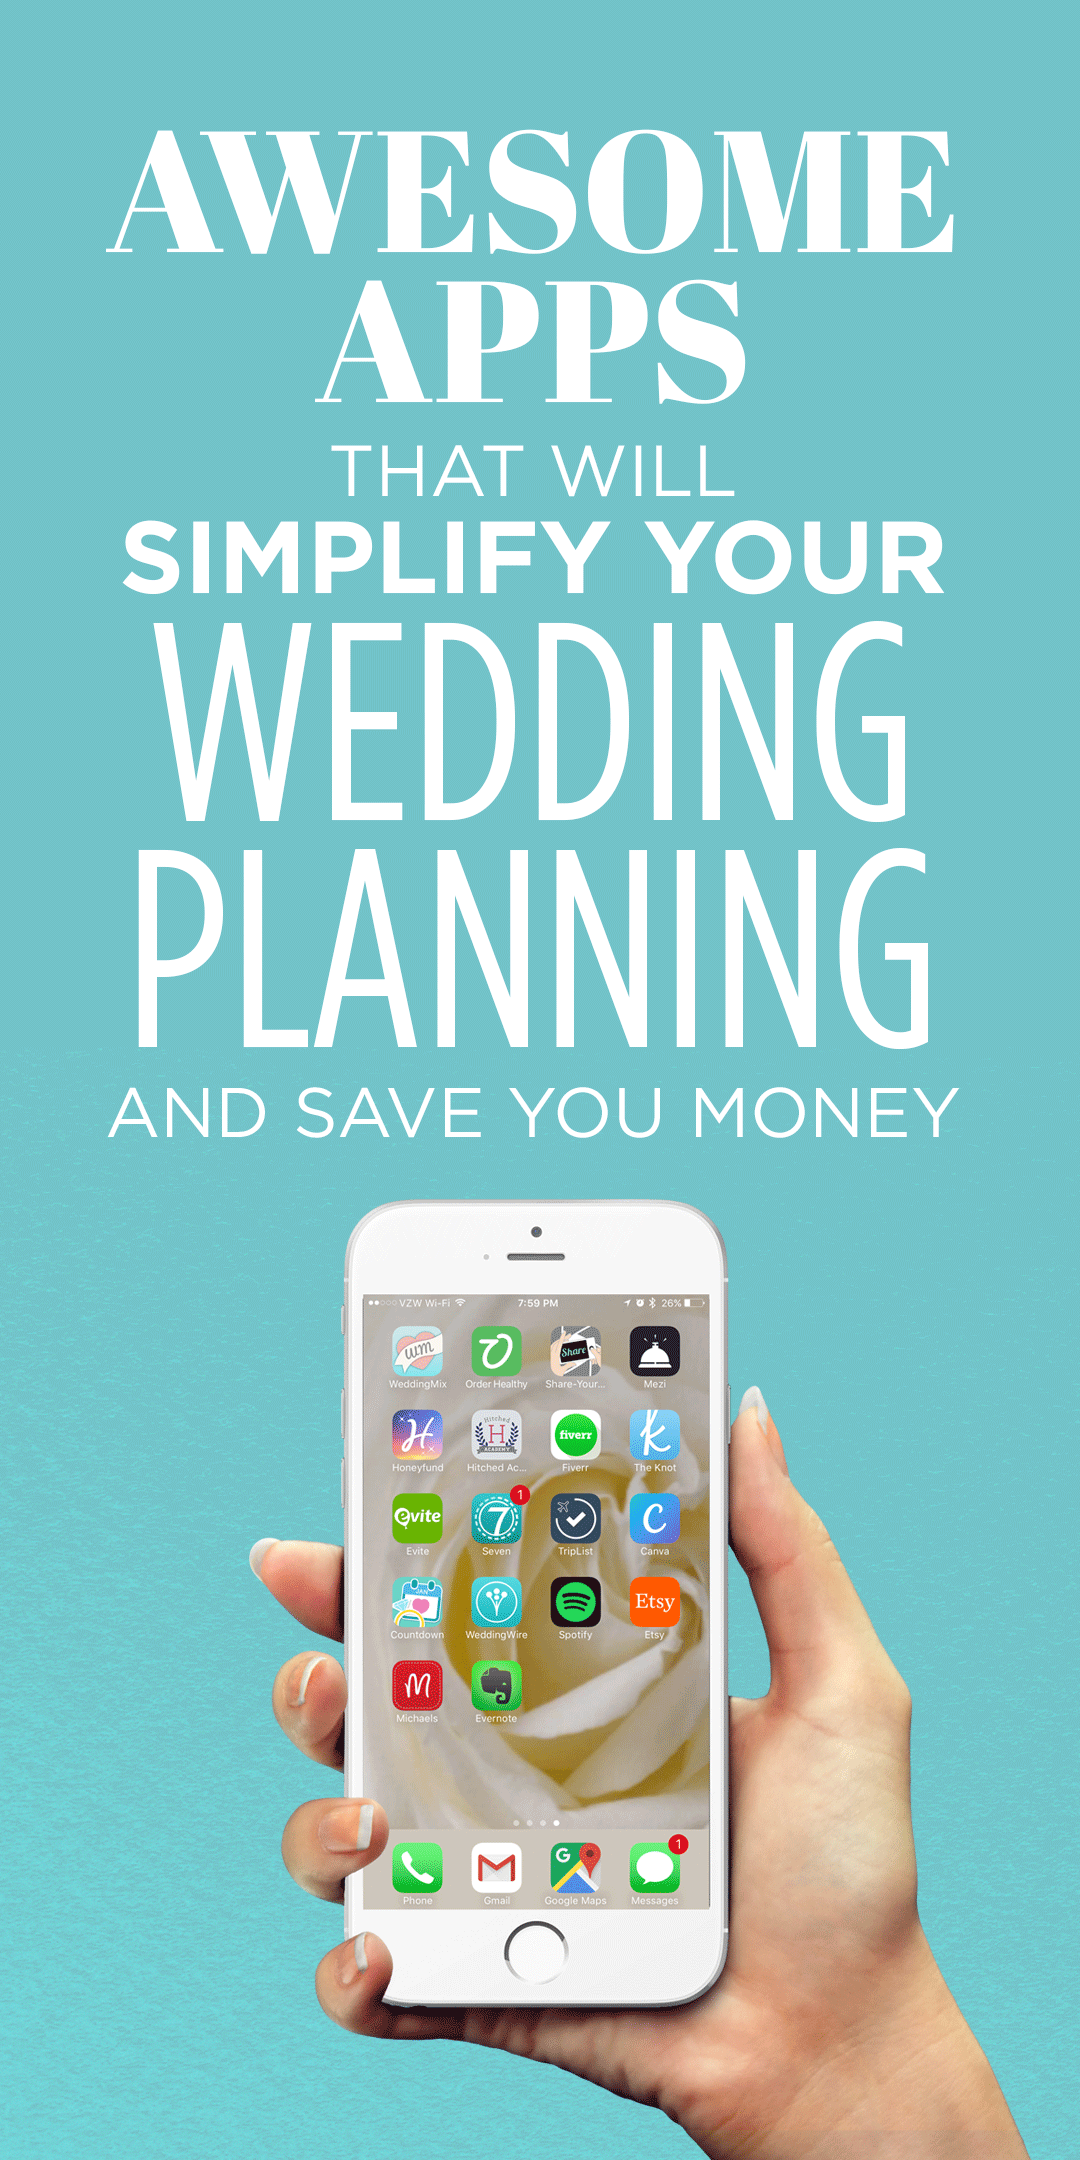 Wedding Apps You Should Know About